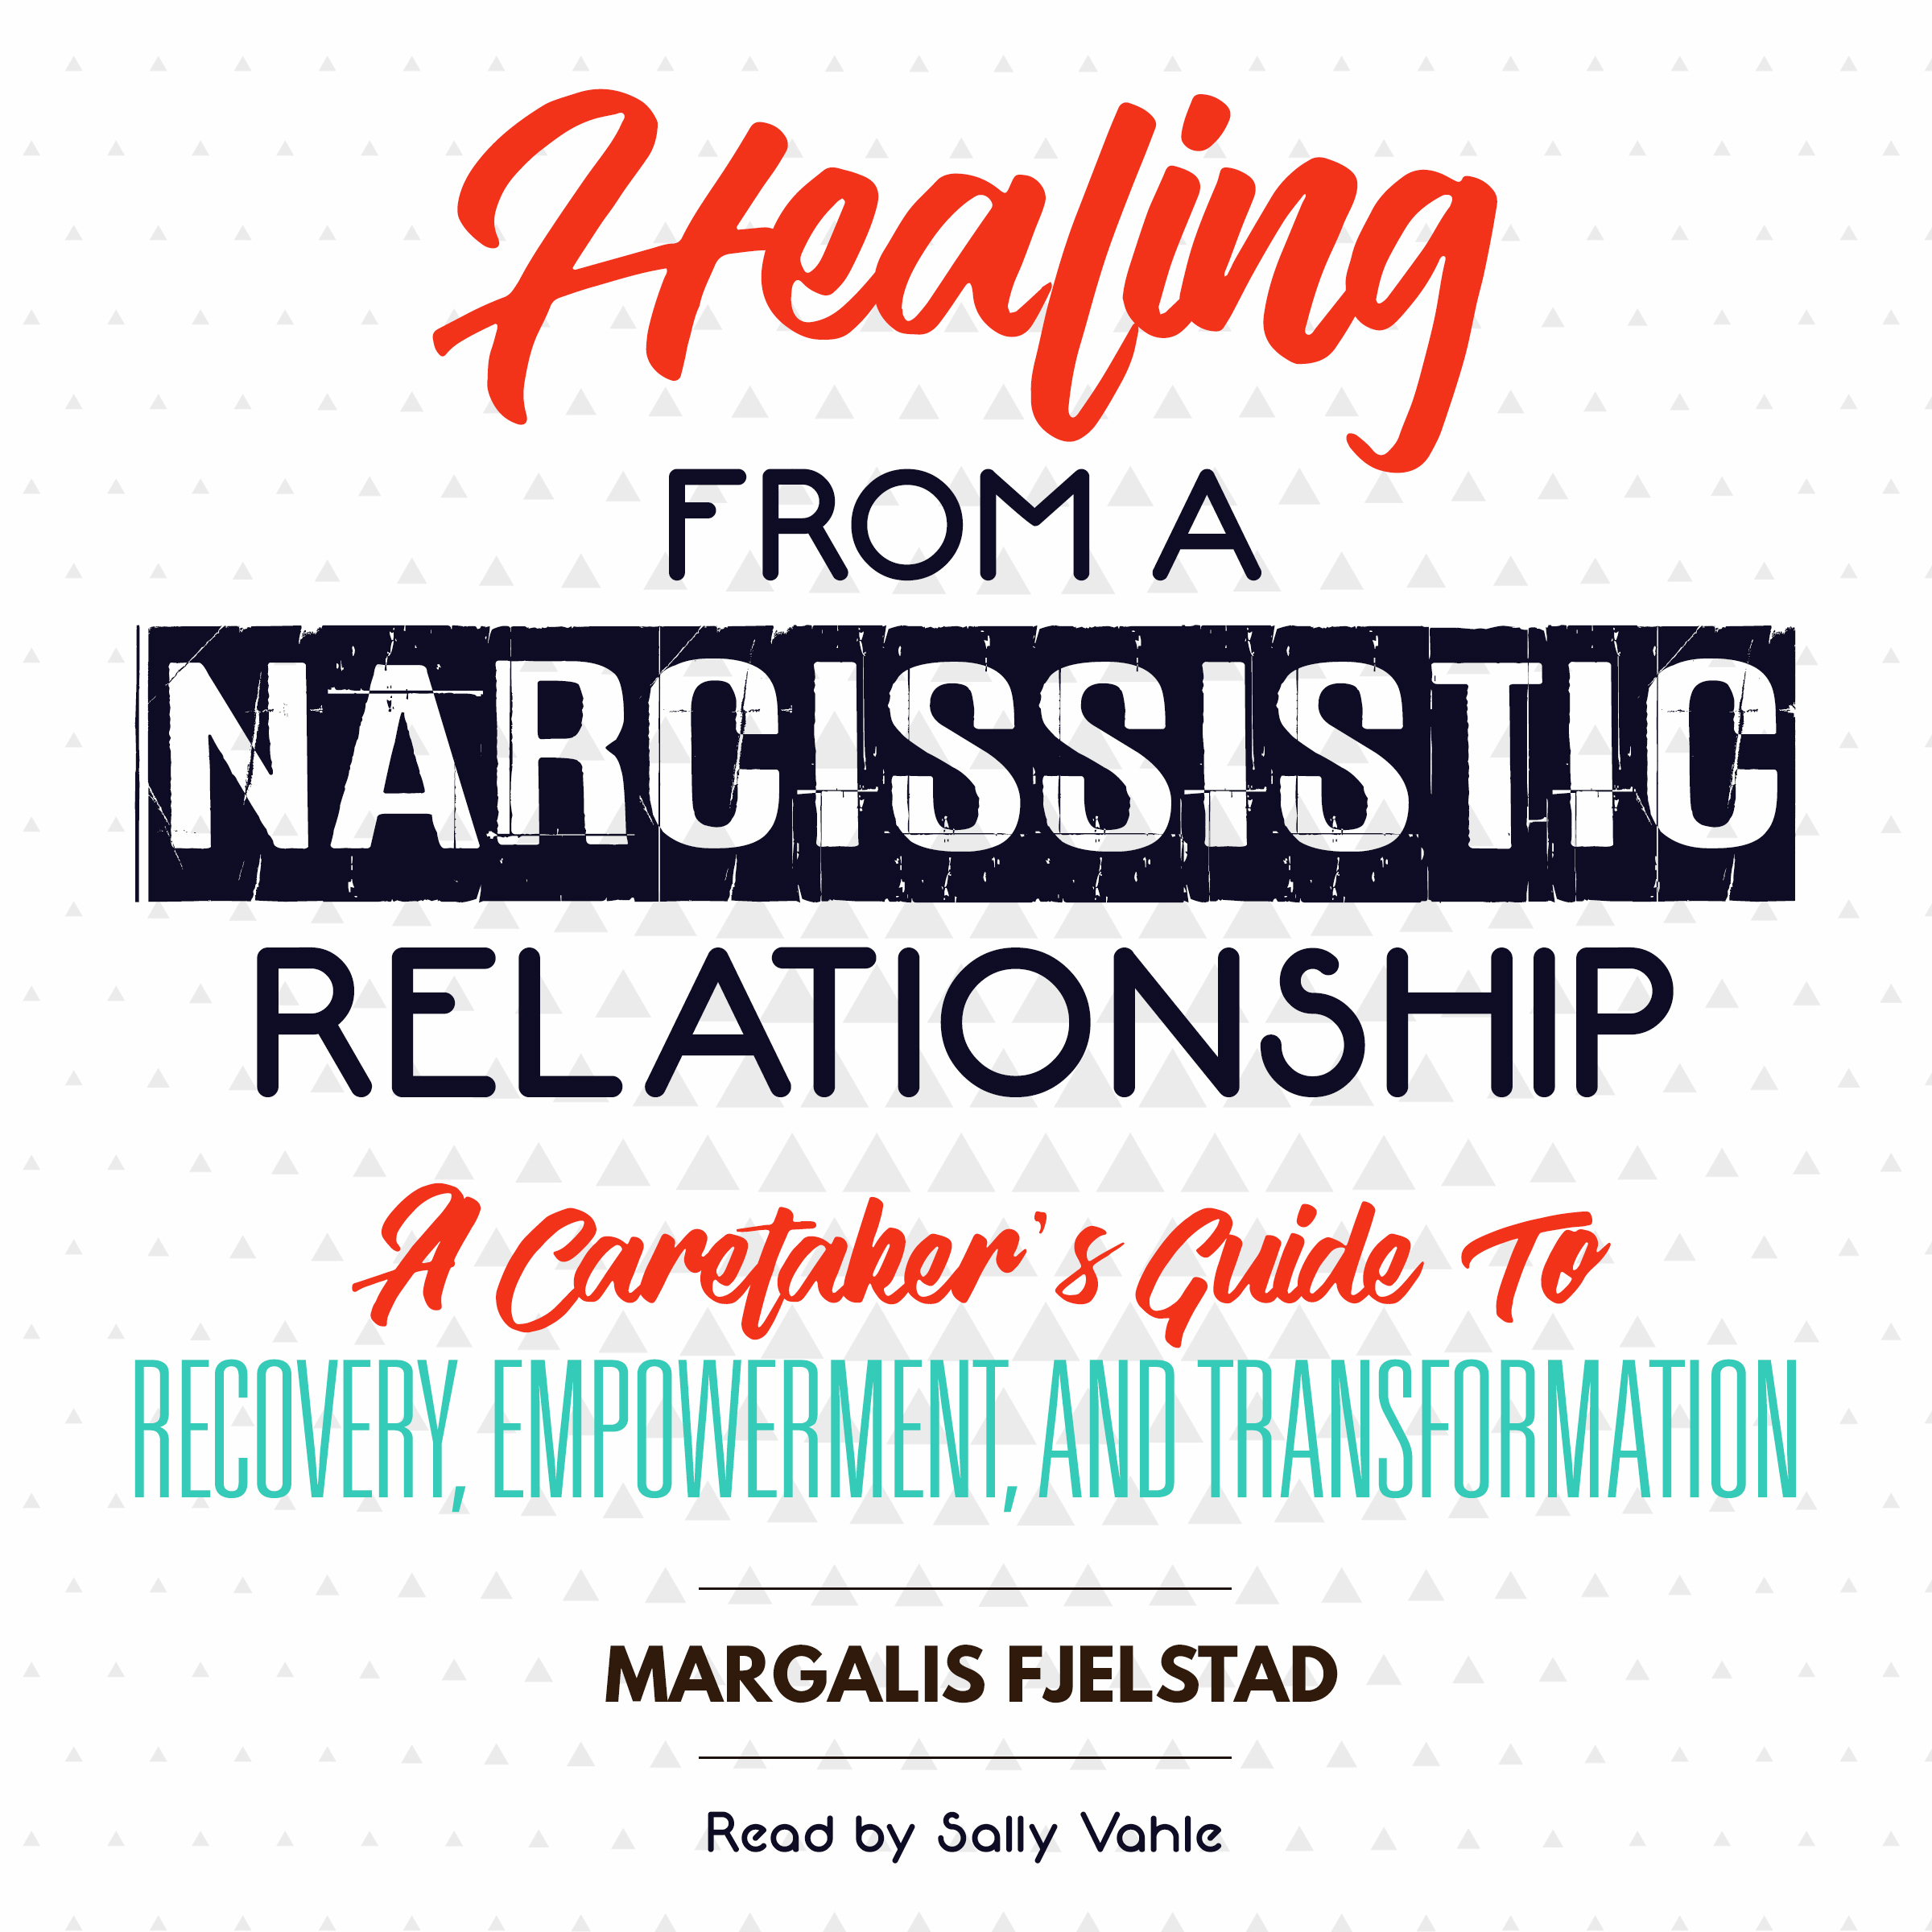 Printable Healing from a Narcissistic Relationship: A Caretaker's Guide to Recovery, Empowerment, and Transformation Audiobook Cover Art